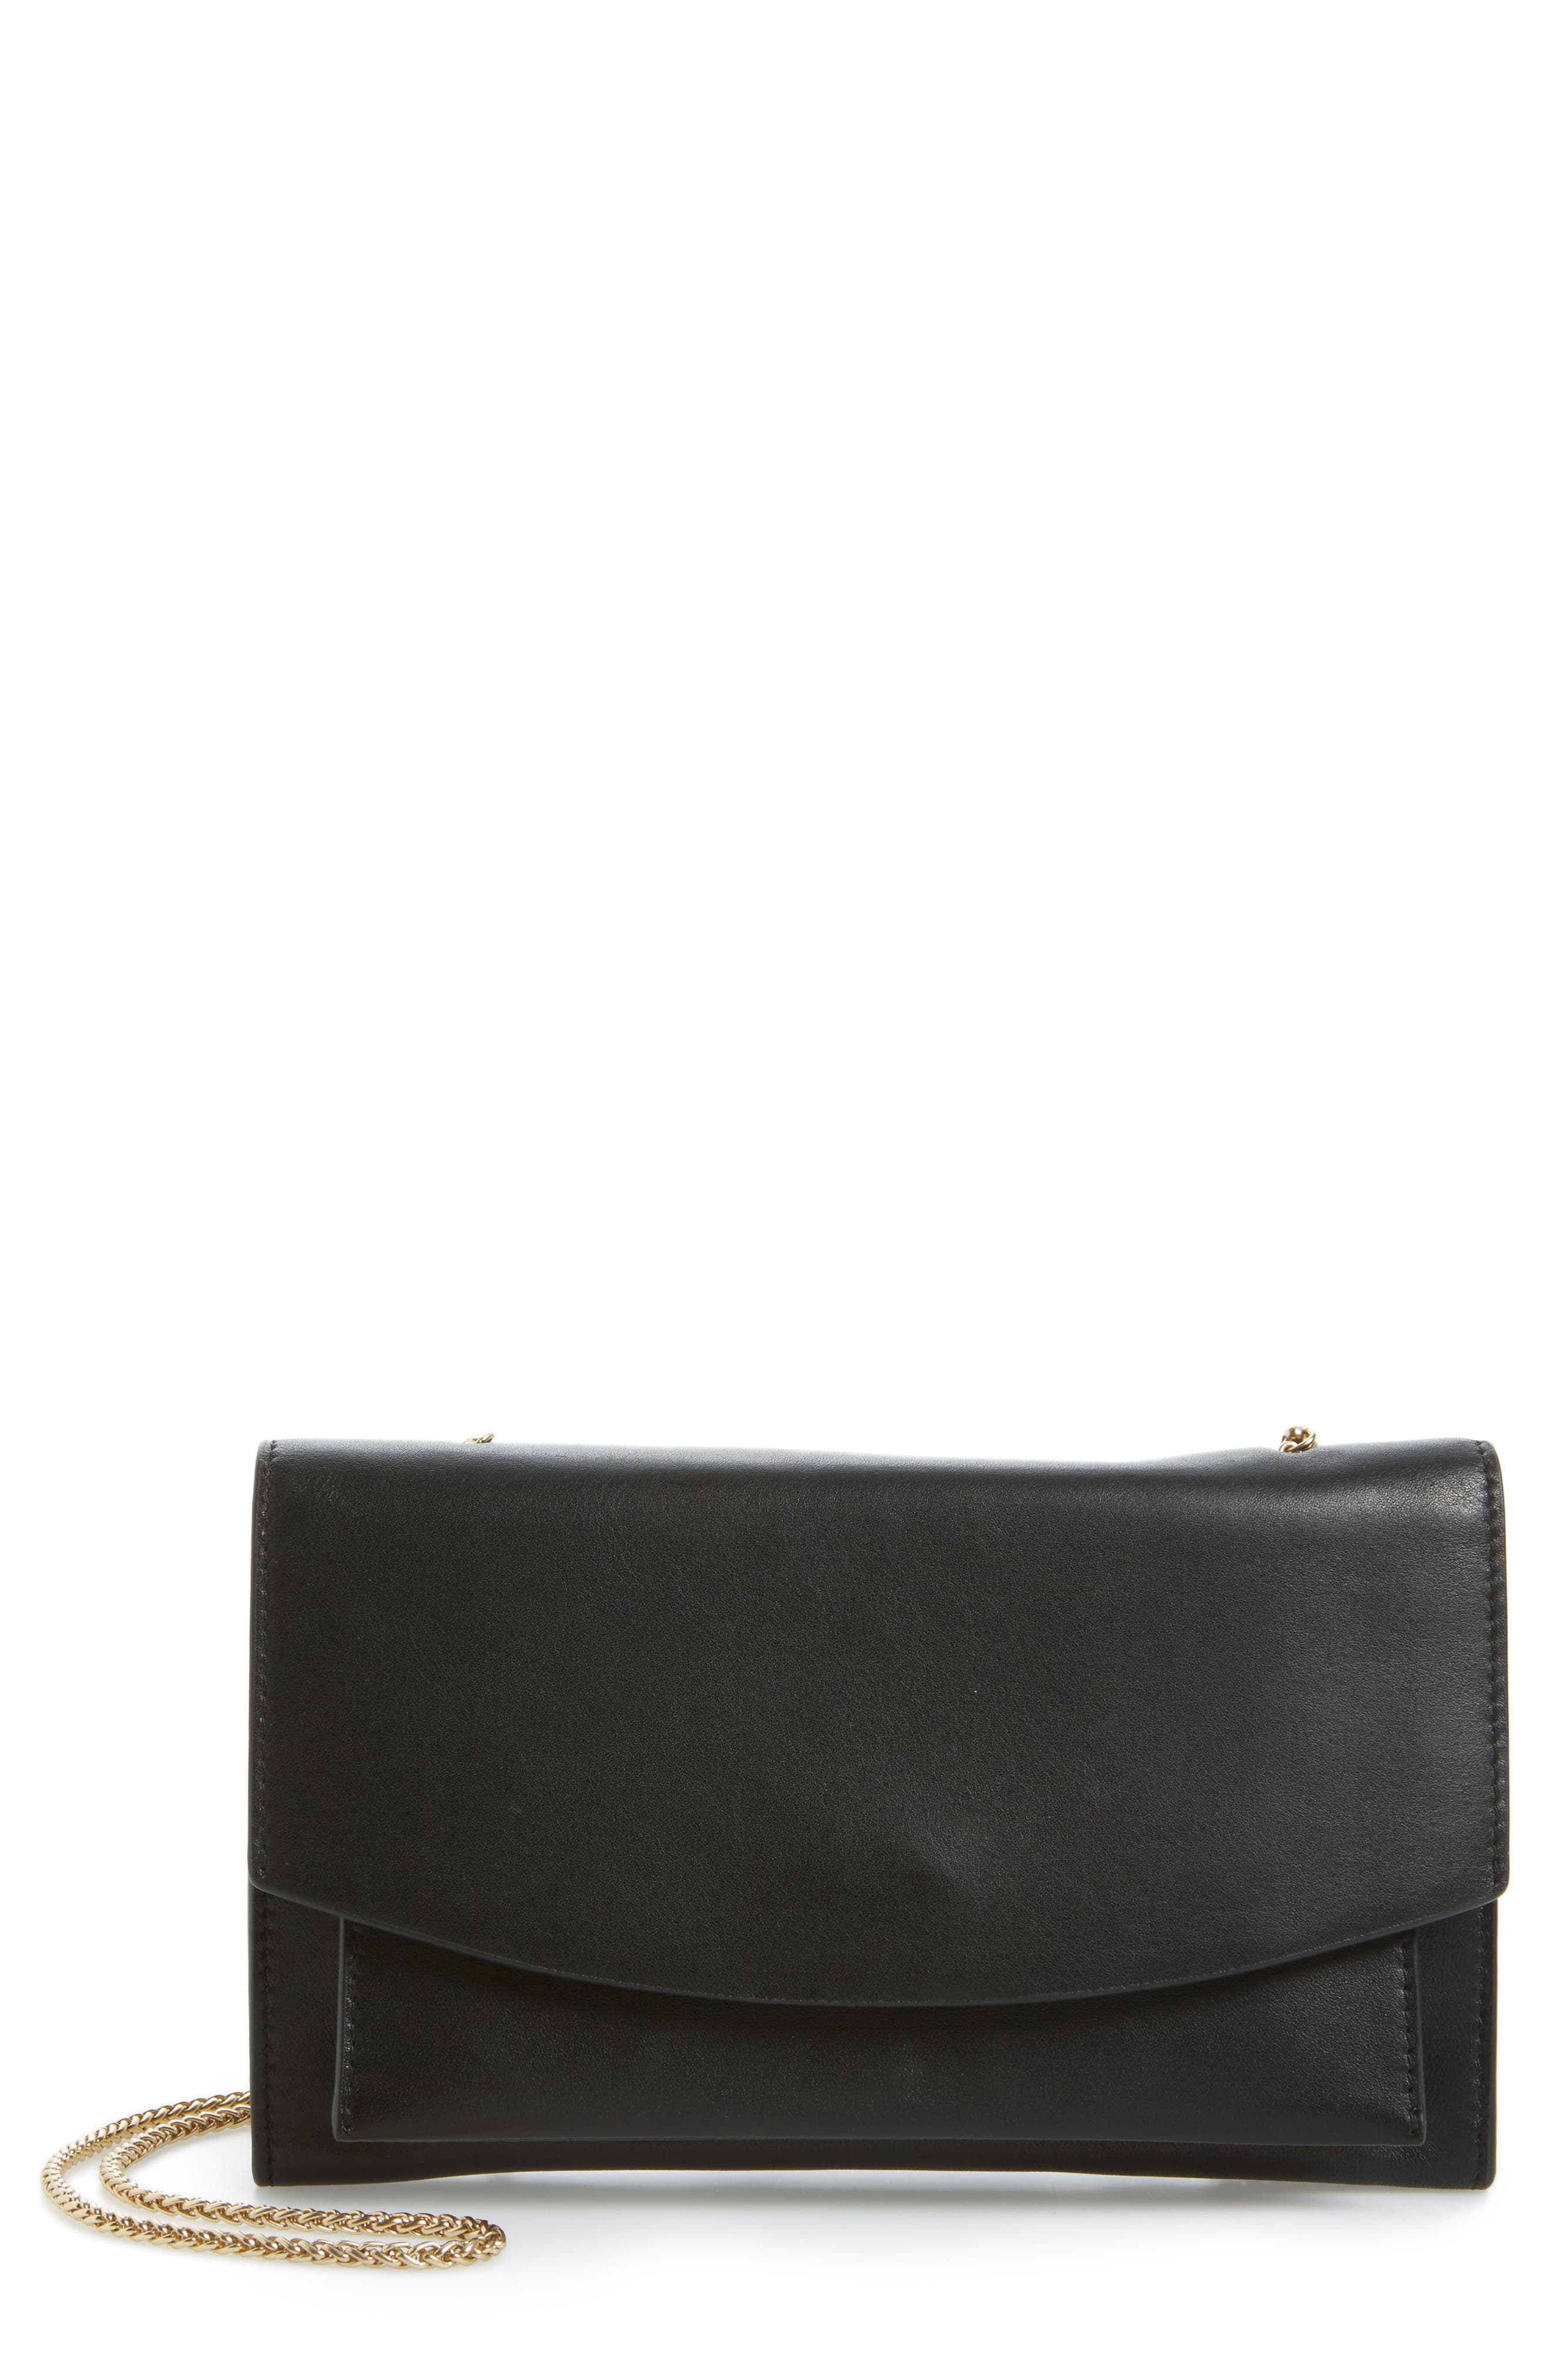 Eryka Leather Envelope Clutch with Detachable Chain,                             Main thumbnail 1, color,                             001